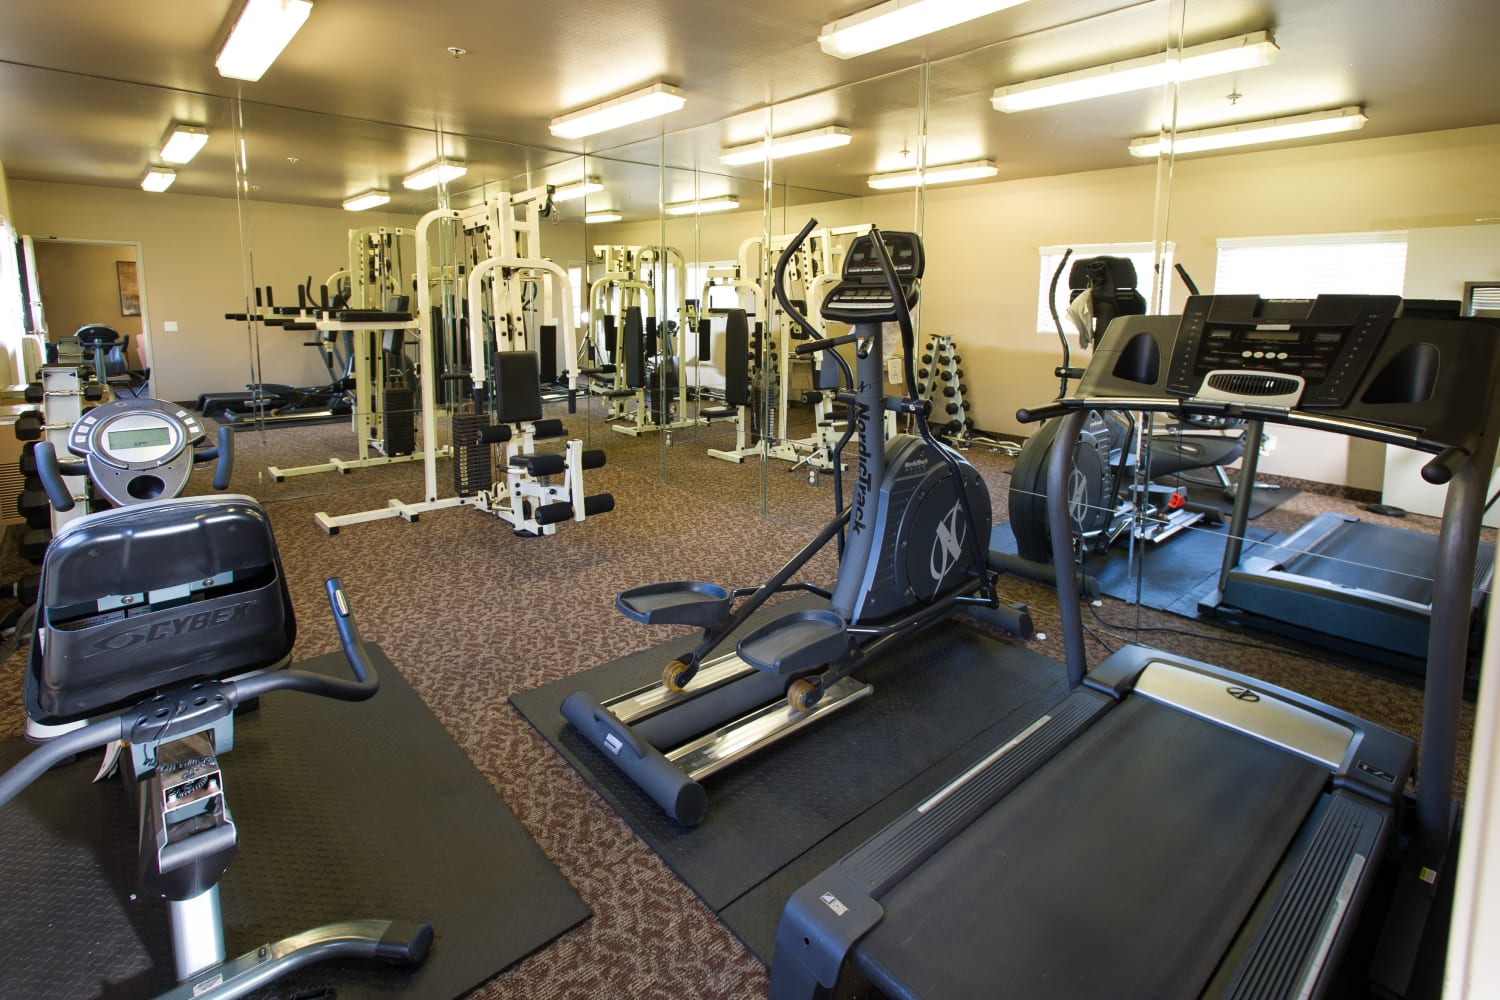 Fitness center at Fashion Terrace in San Diego, California